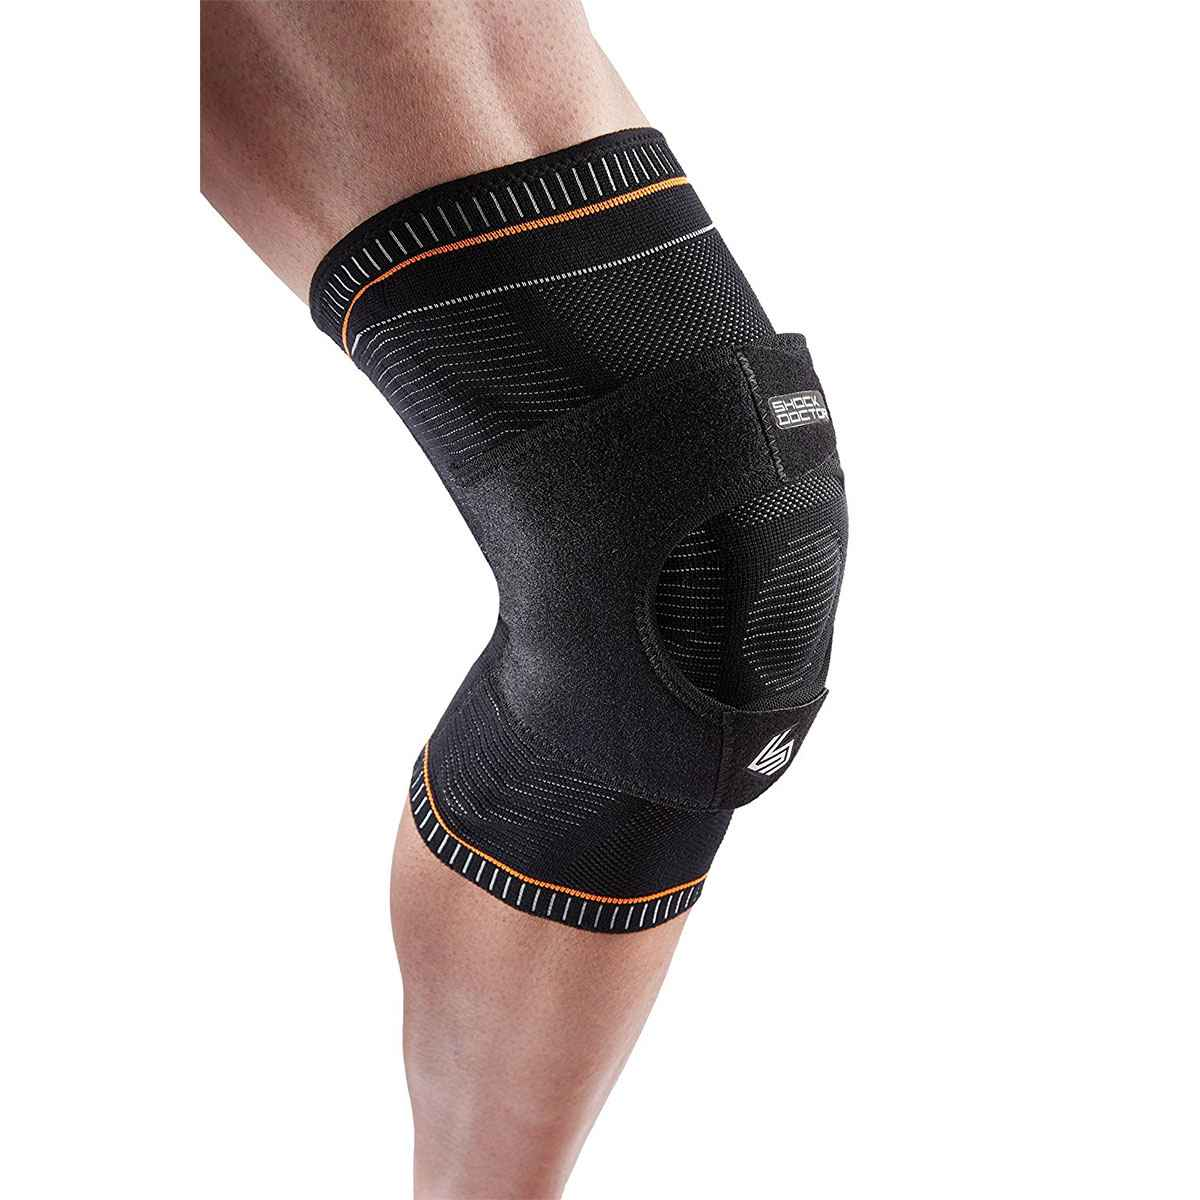 McDavid Ultra Knit Dual Wrap Knee Support with Stays